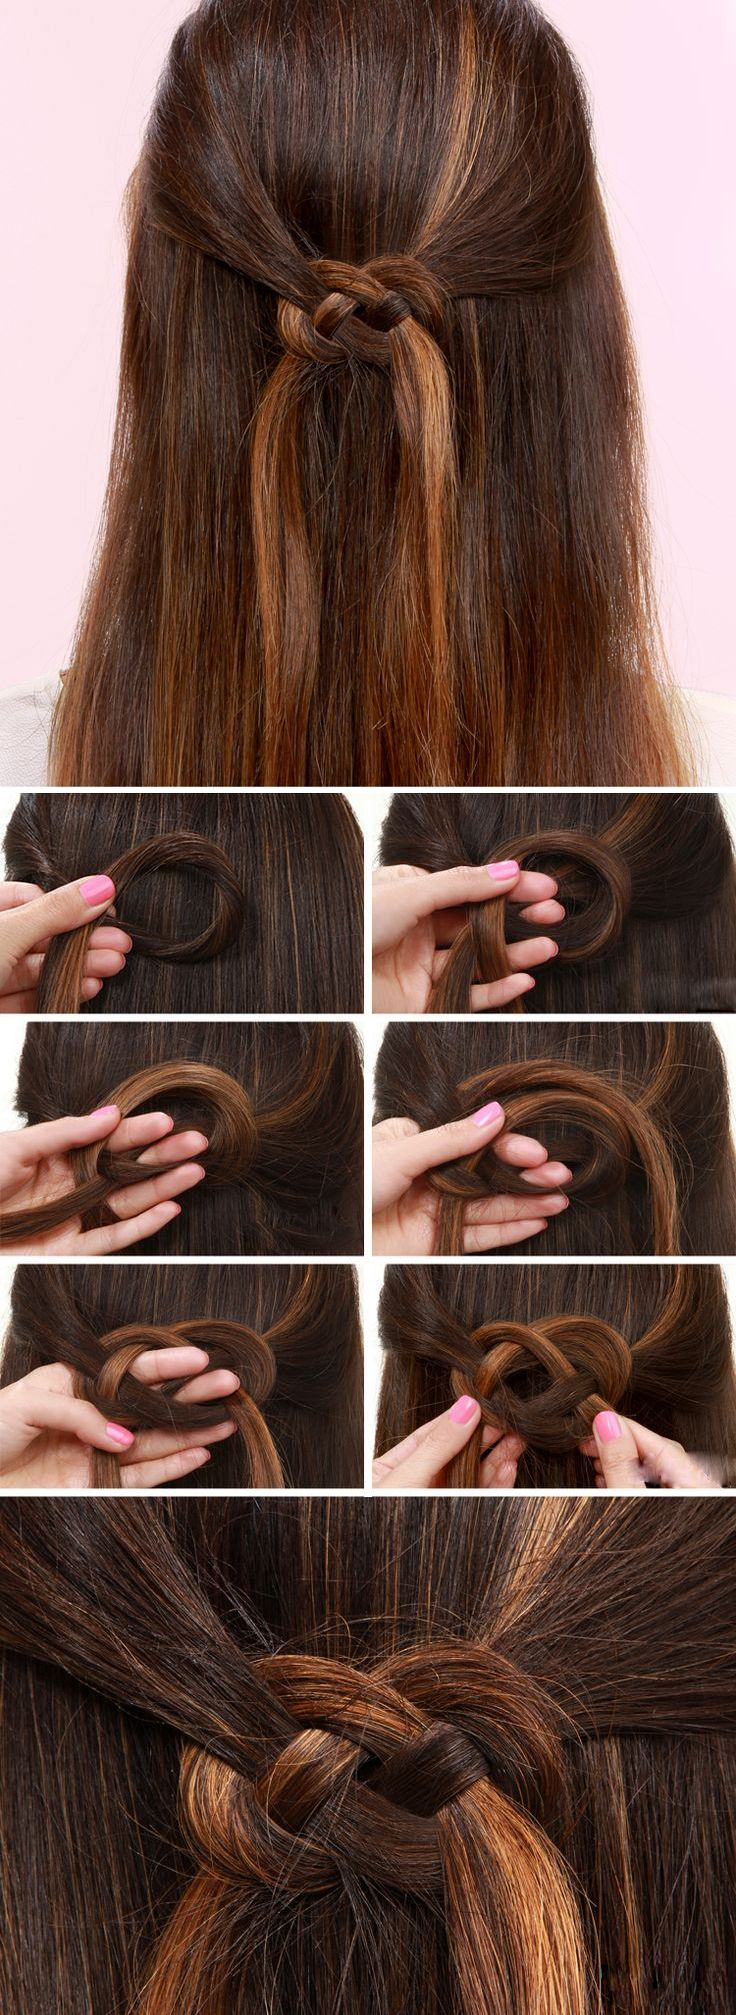 Do you want to have a beautiful bowknot hair? Maybe the single hair color is not enough, why do not add some gold color hair(using clip hair) and learn to fix your hair in this way? that must make your hair become more special and sweet!